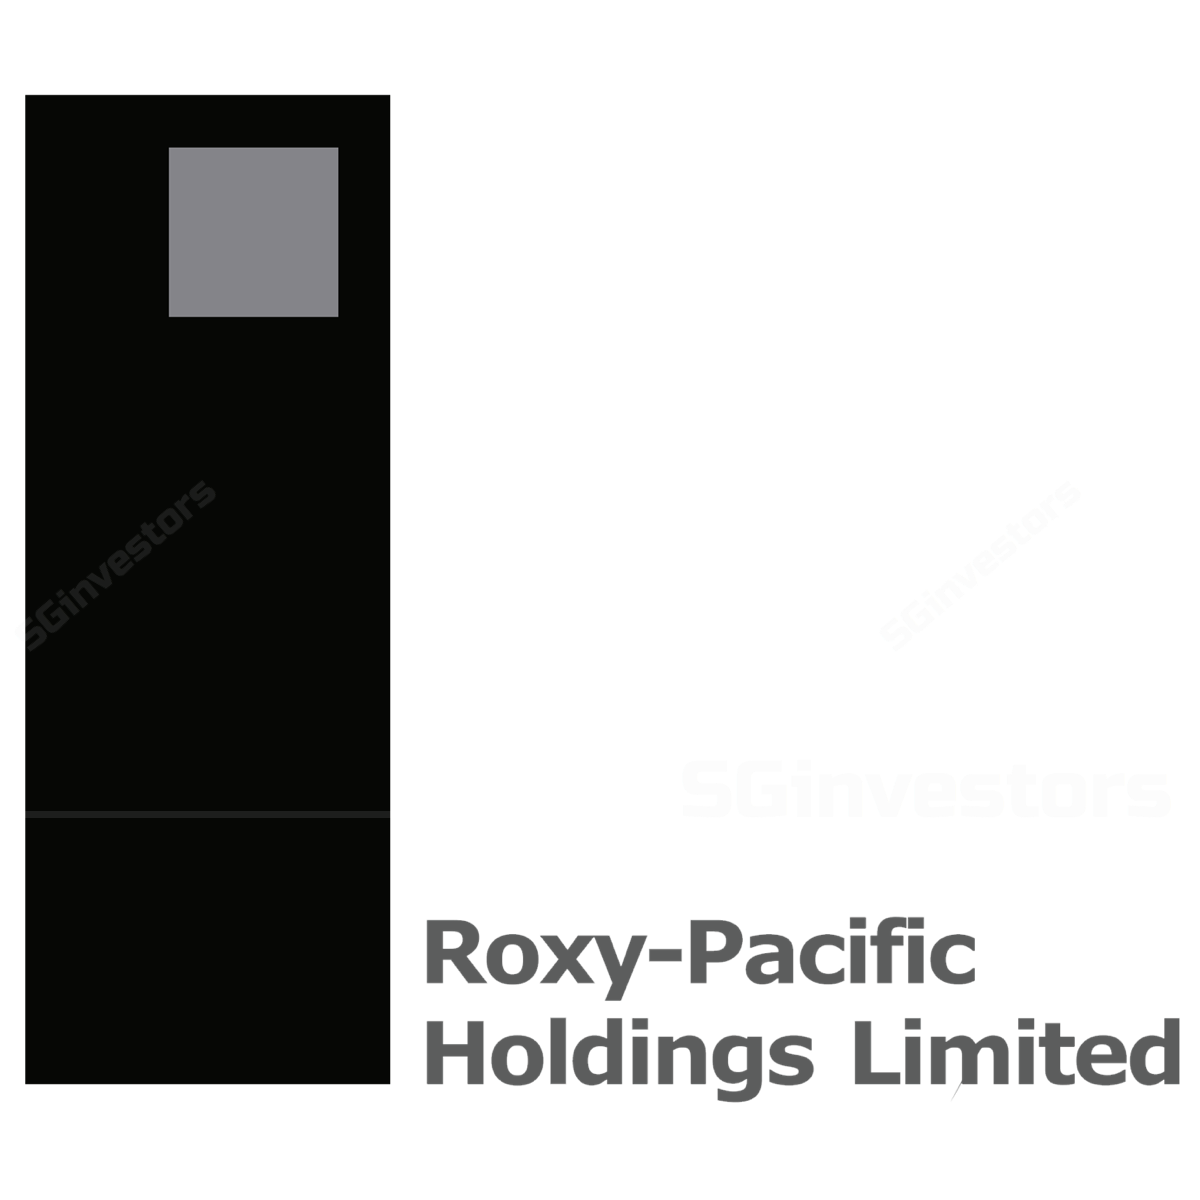 Roxy-Pacific Holdings (ROXY SP) - DBS Vickers 2017-12-14: Loading Up For The Future